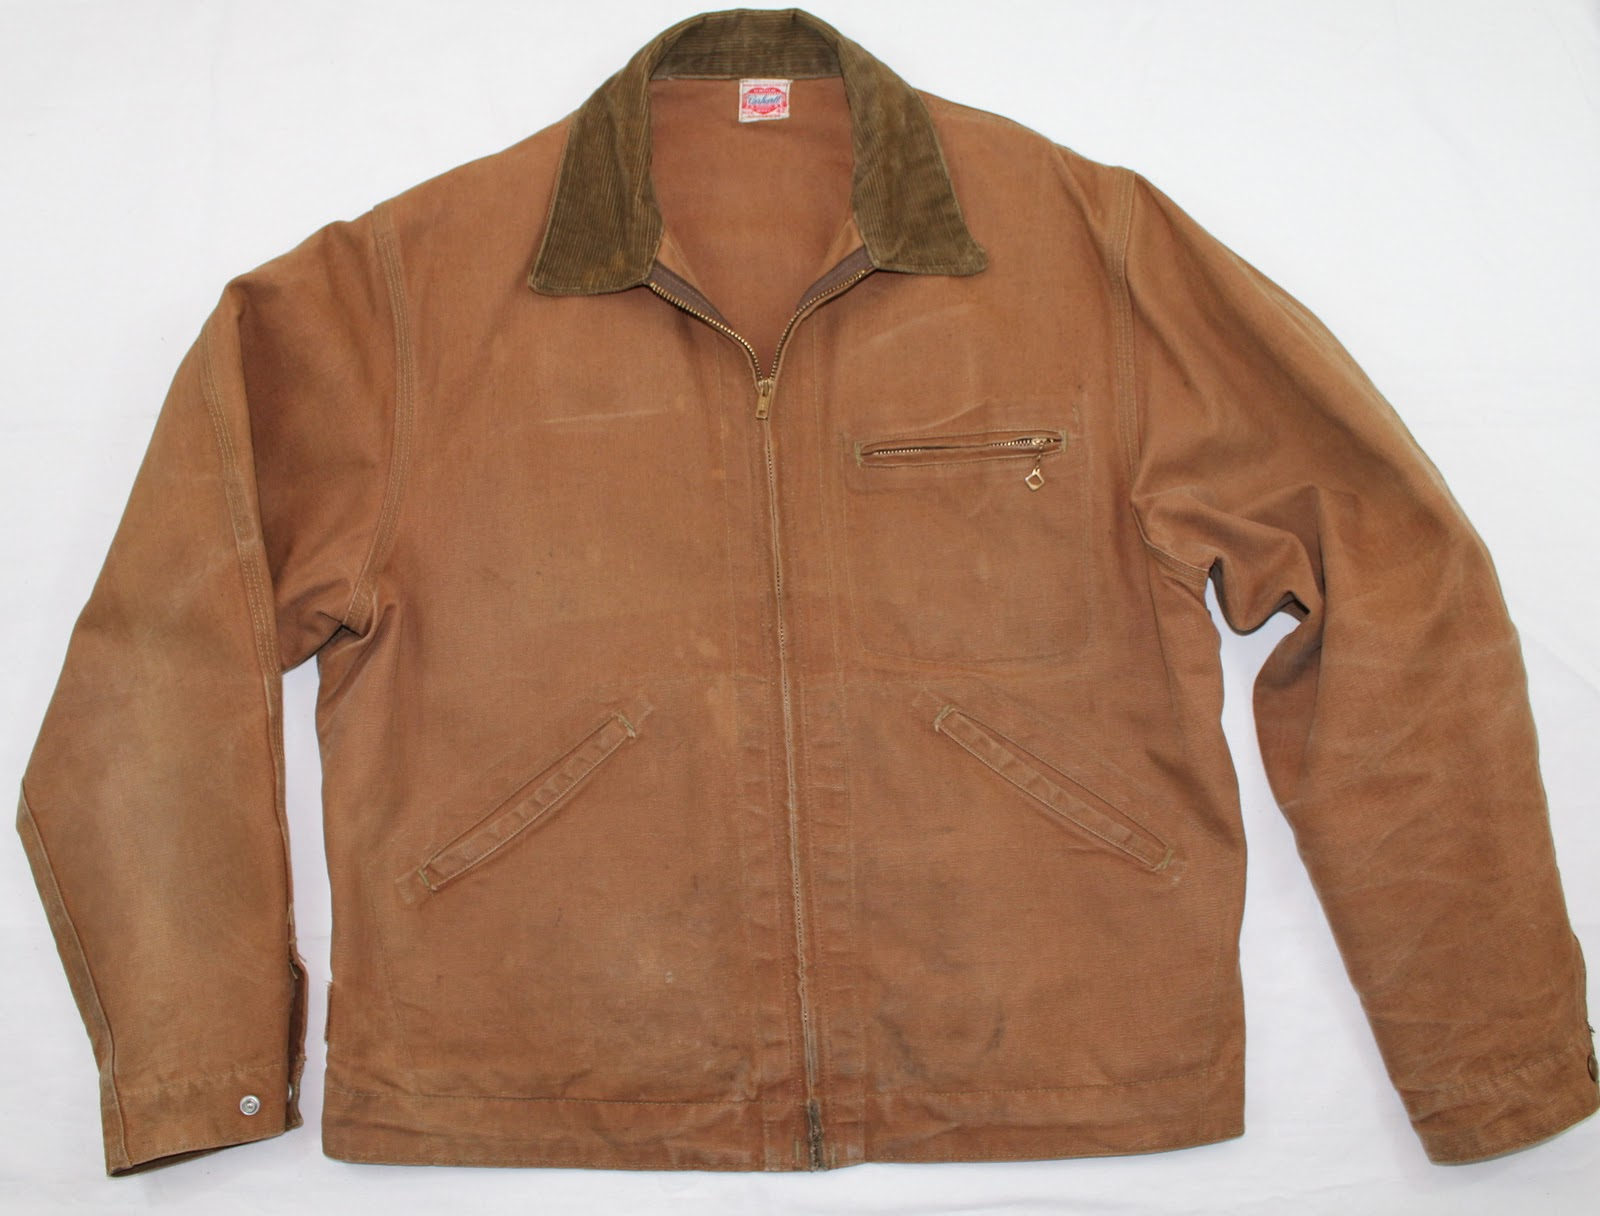 vintage workwear: 1940's era Carhartt Brown Duck Zipper Jacket